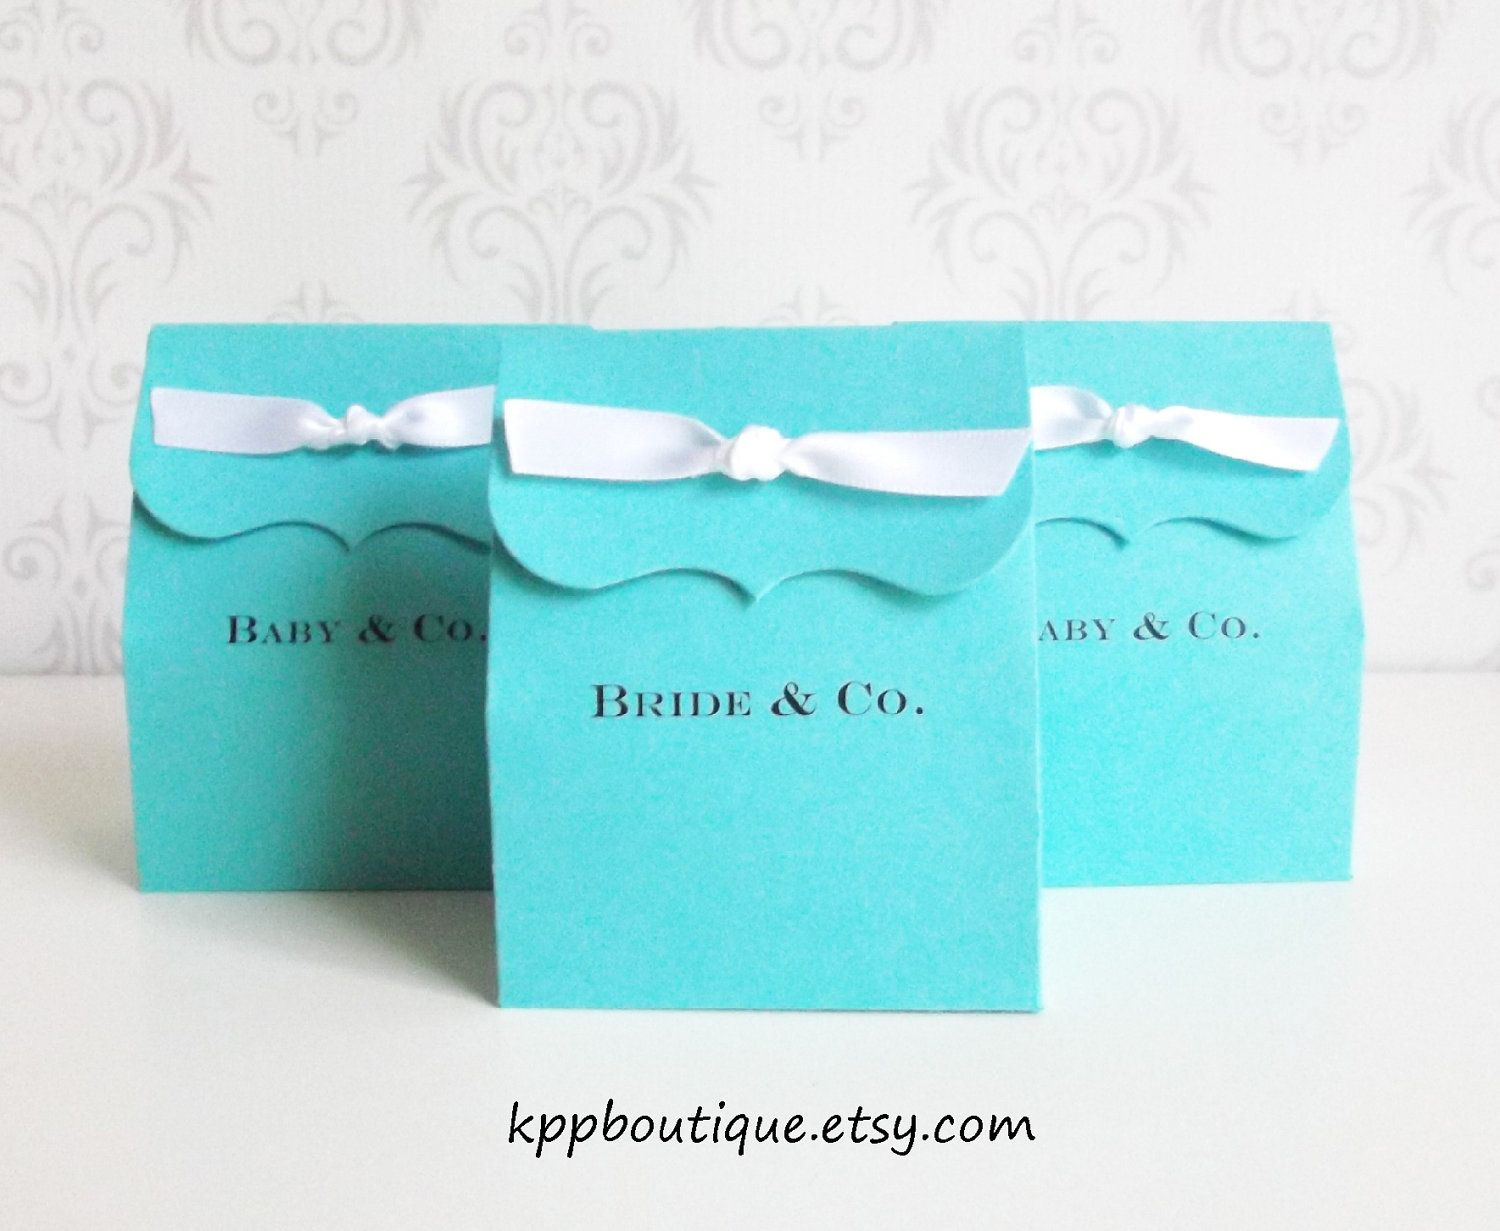 cf482bc56a Personalize with Jordan's Sweet 16. Personalized Tiffany Blue Favor Bags |  Tiffany & Co Inspired Personalized Favor Boxes/Bags by kppboutique